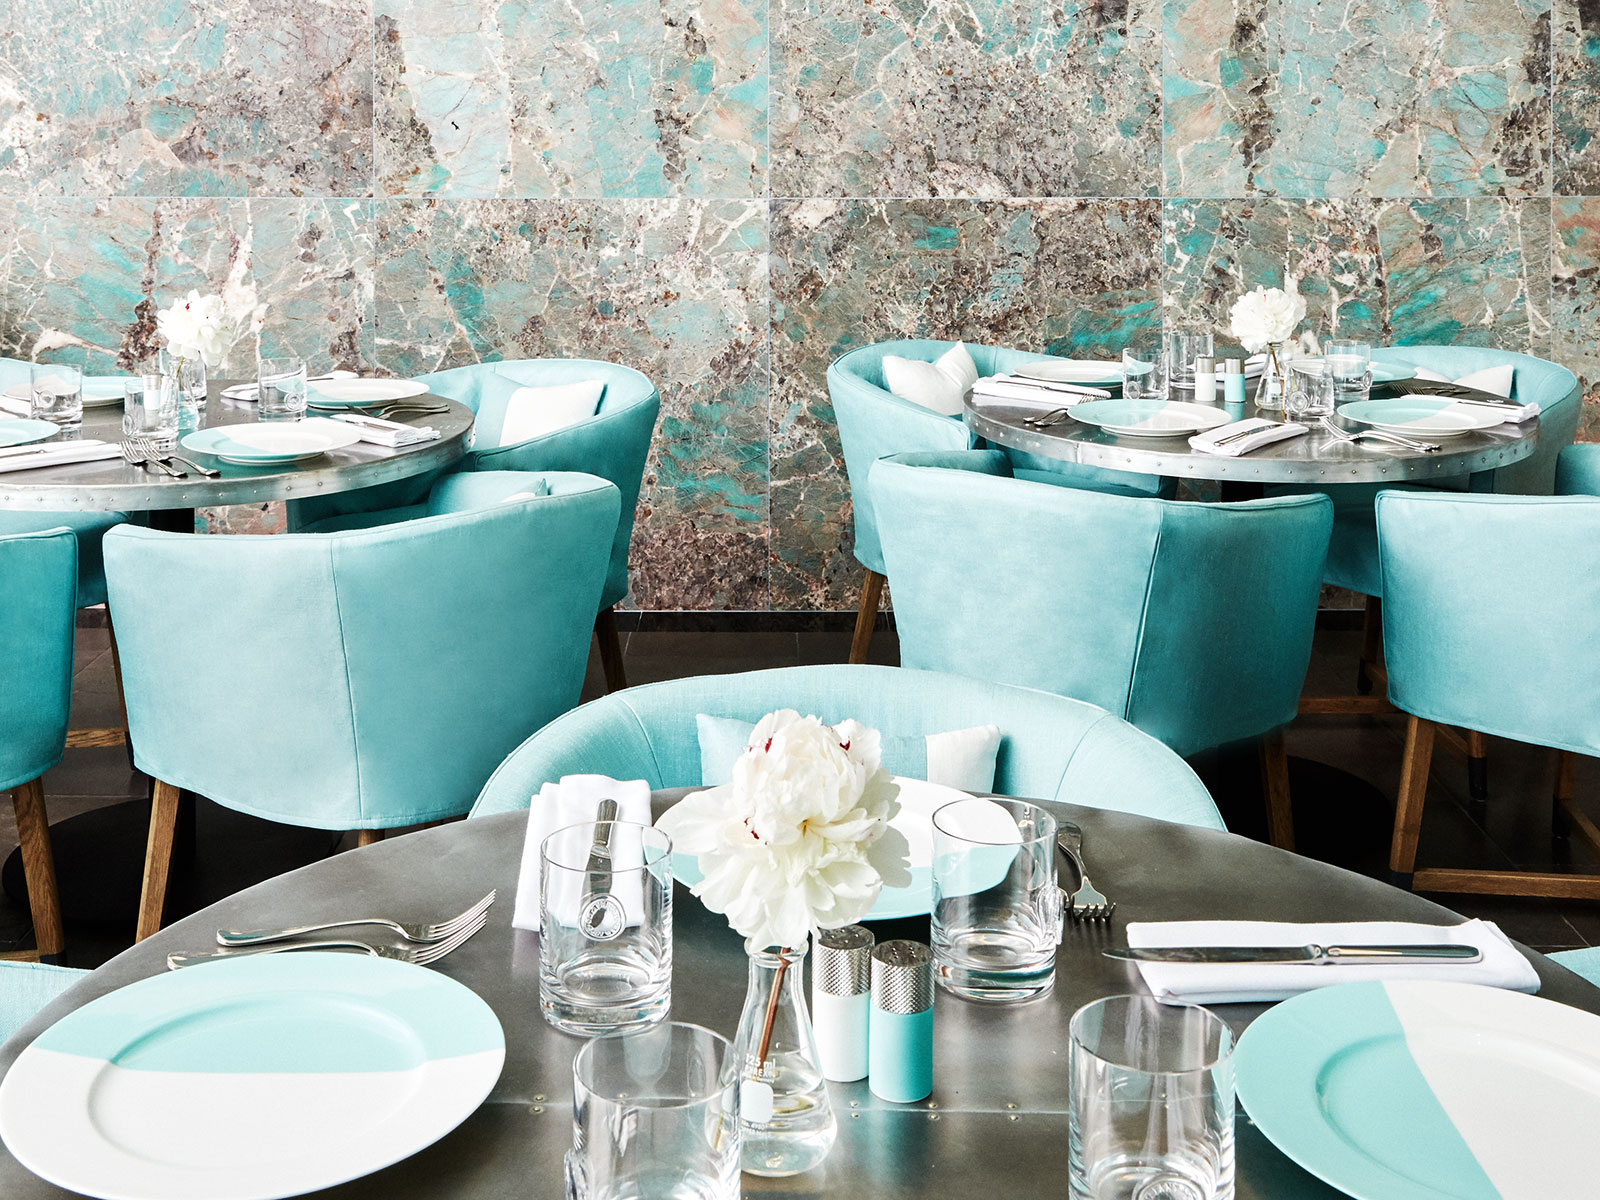 Tiffany's Is Finally Offering Breakfast at Tiffany's at the Blue Box Café